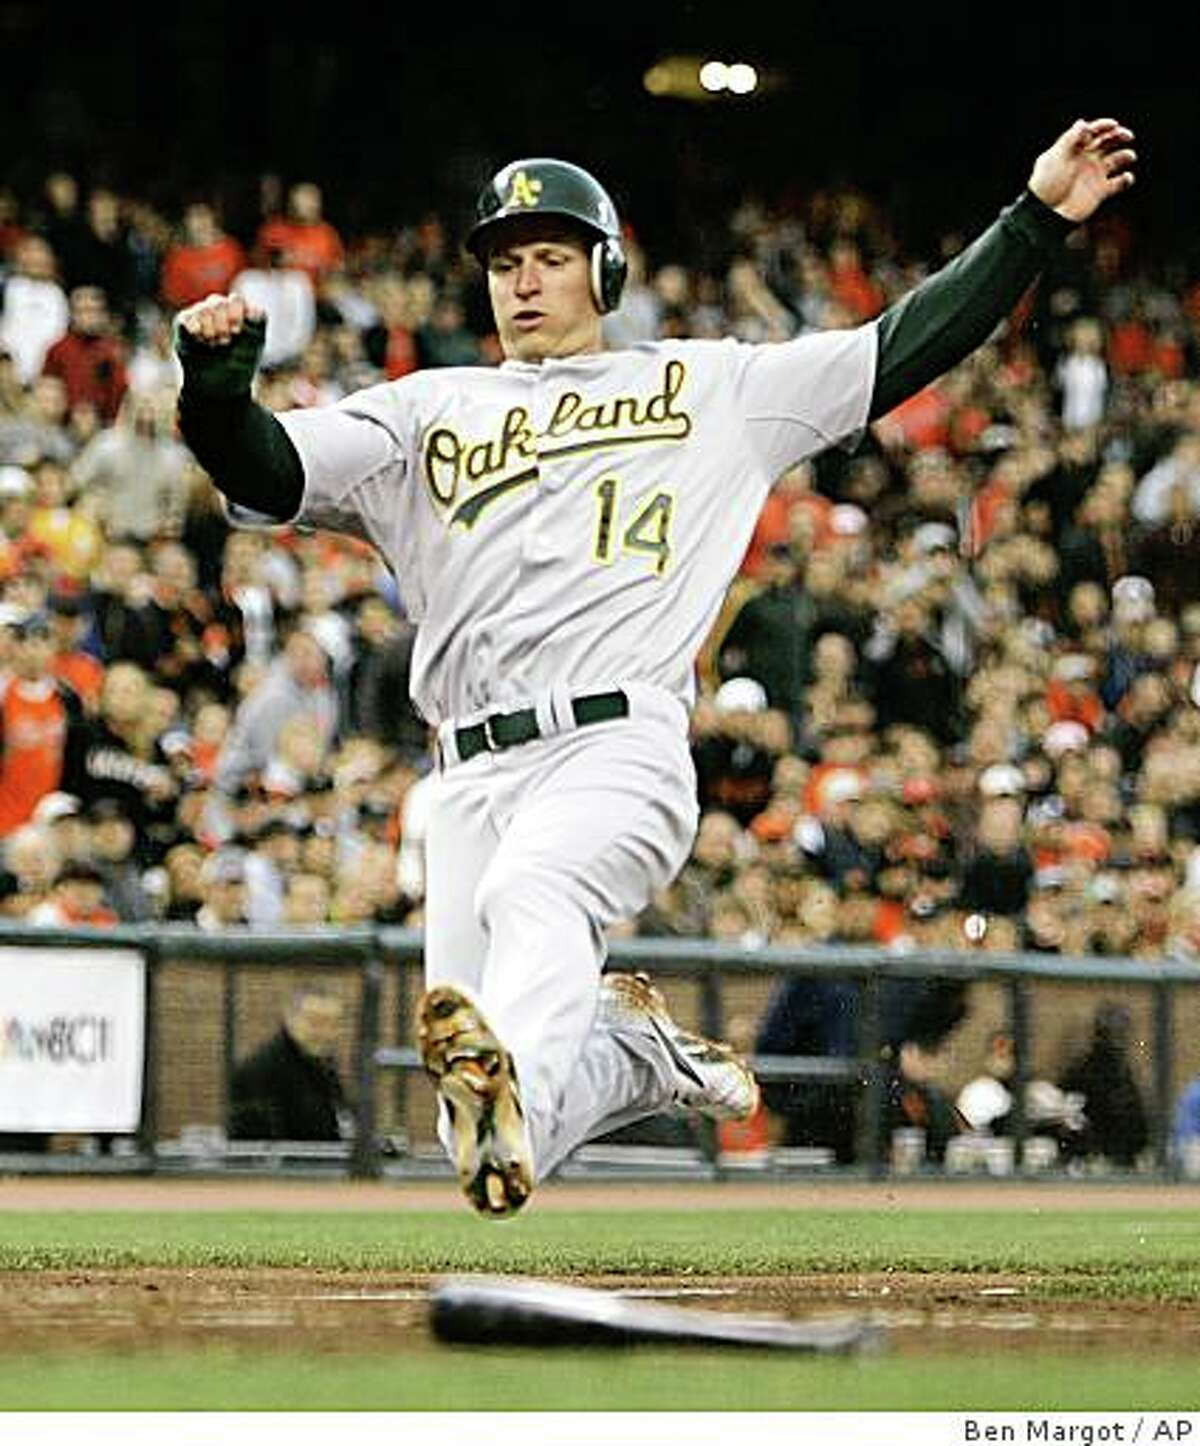 Oakland Athletics' Mark Ellis slides to score during the third inning of a baseball game against the San Francisco Giants Friday, June 13, 2008, in San Francisco. Ellis scored on a sacrifice fly by Jack Cust. (AP Photo/Ben Margot)